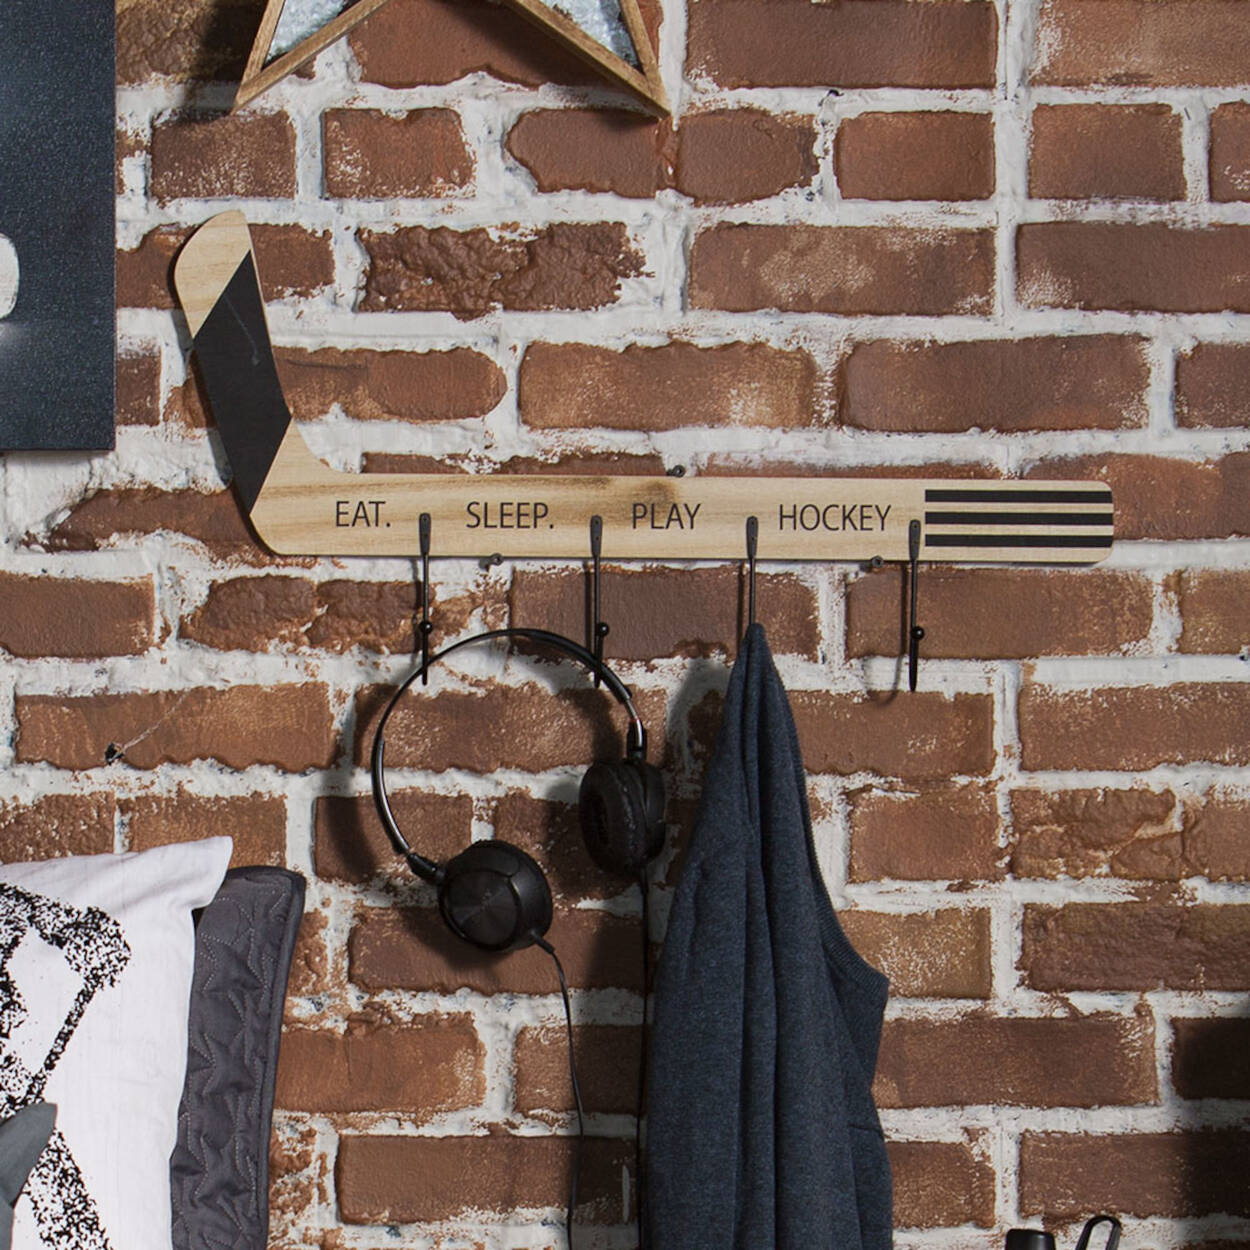 Hockey Stick with Hooks